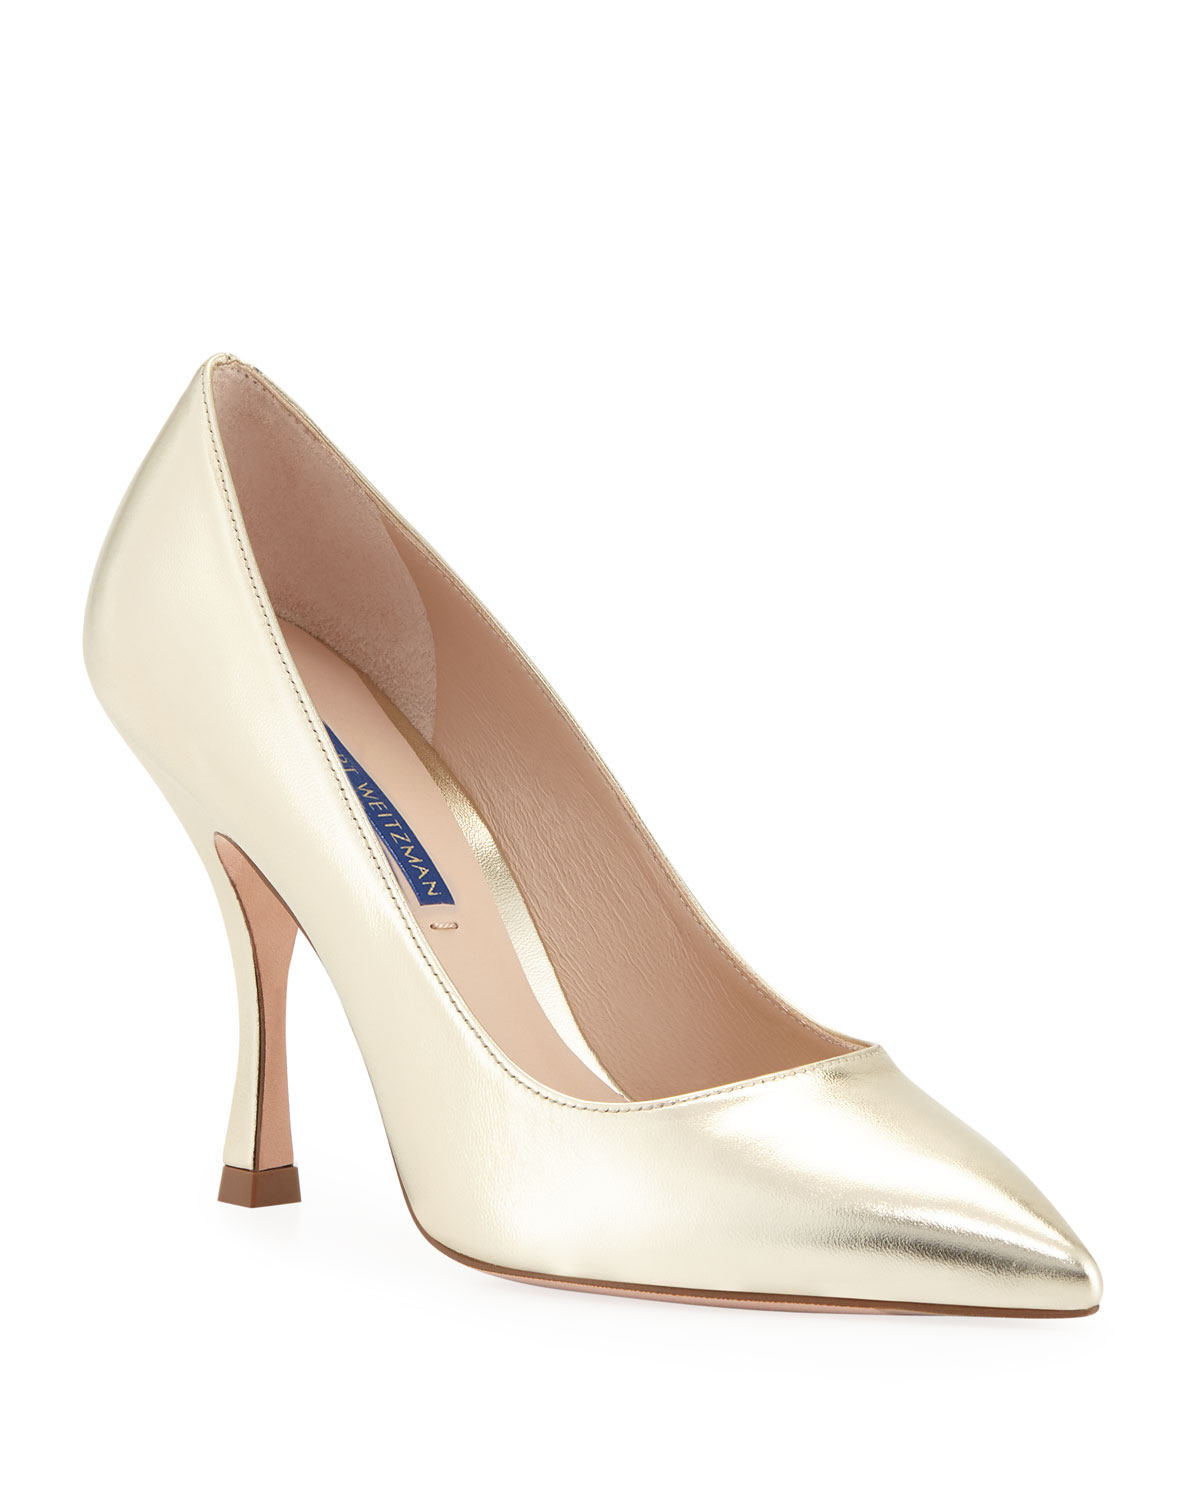 Tippi 95mm Metallic Leather Point Toe Pumps by Stuart Weitzman